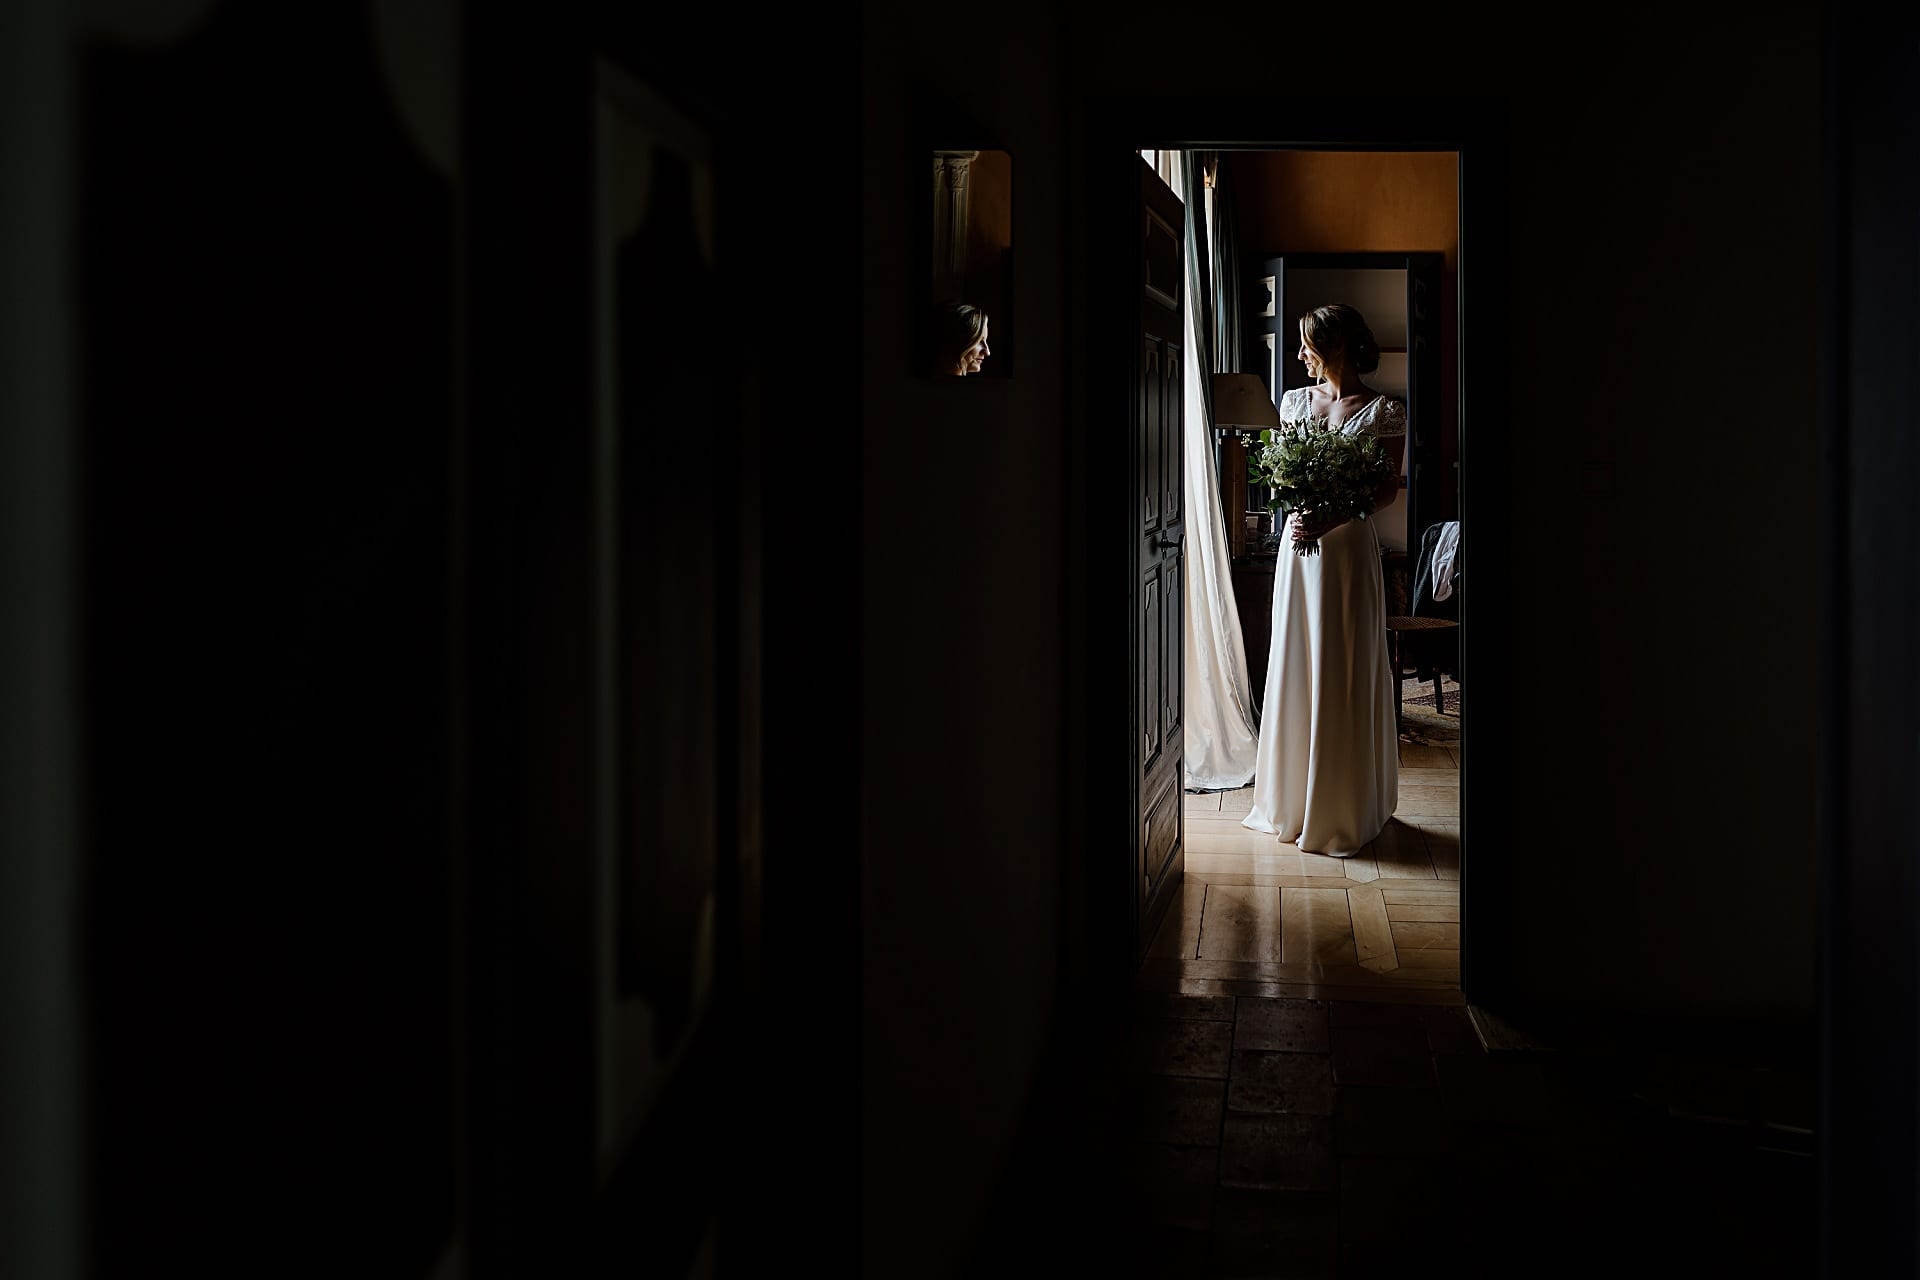 Bride standing in window light at a French Chateau